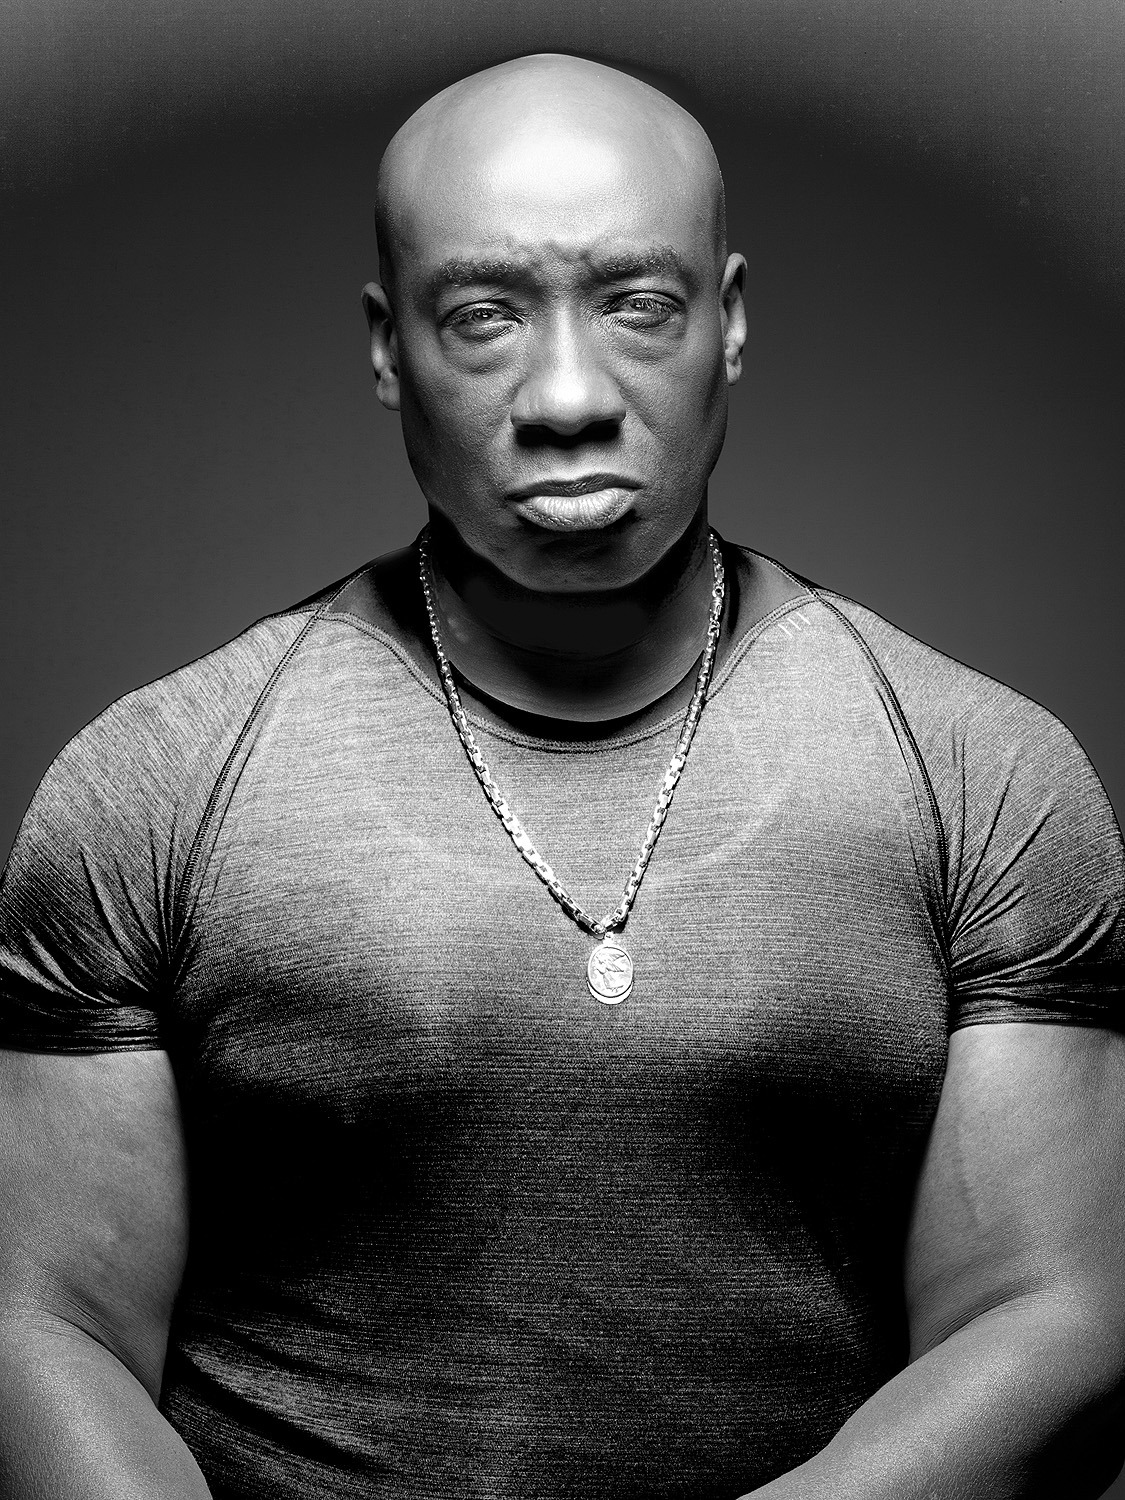 blvck-bastard:  Michael Clarke Duncan R.I.P. December 10, 1957-September 3, 2012